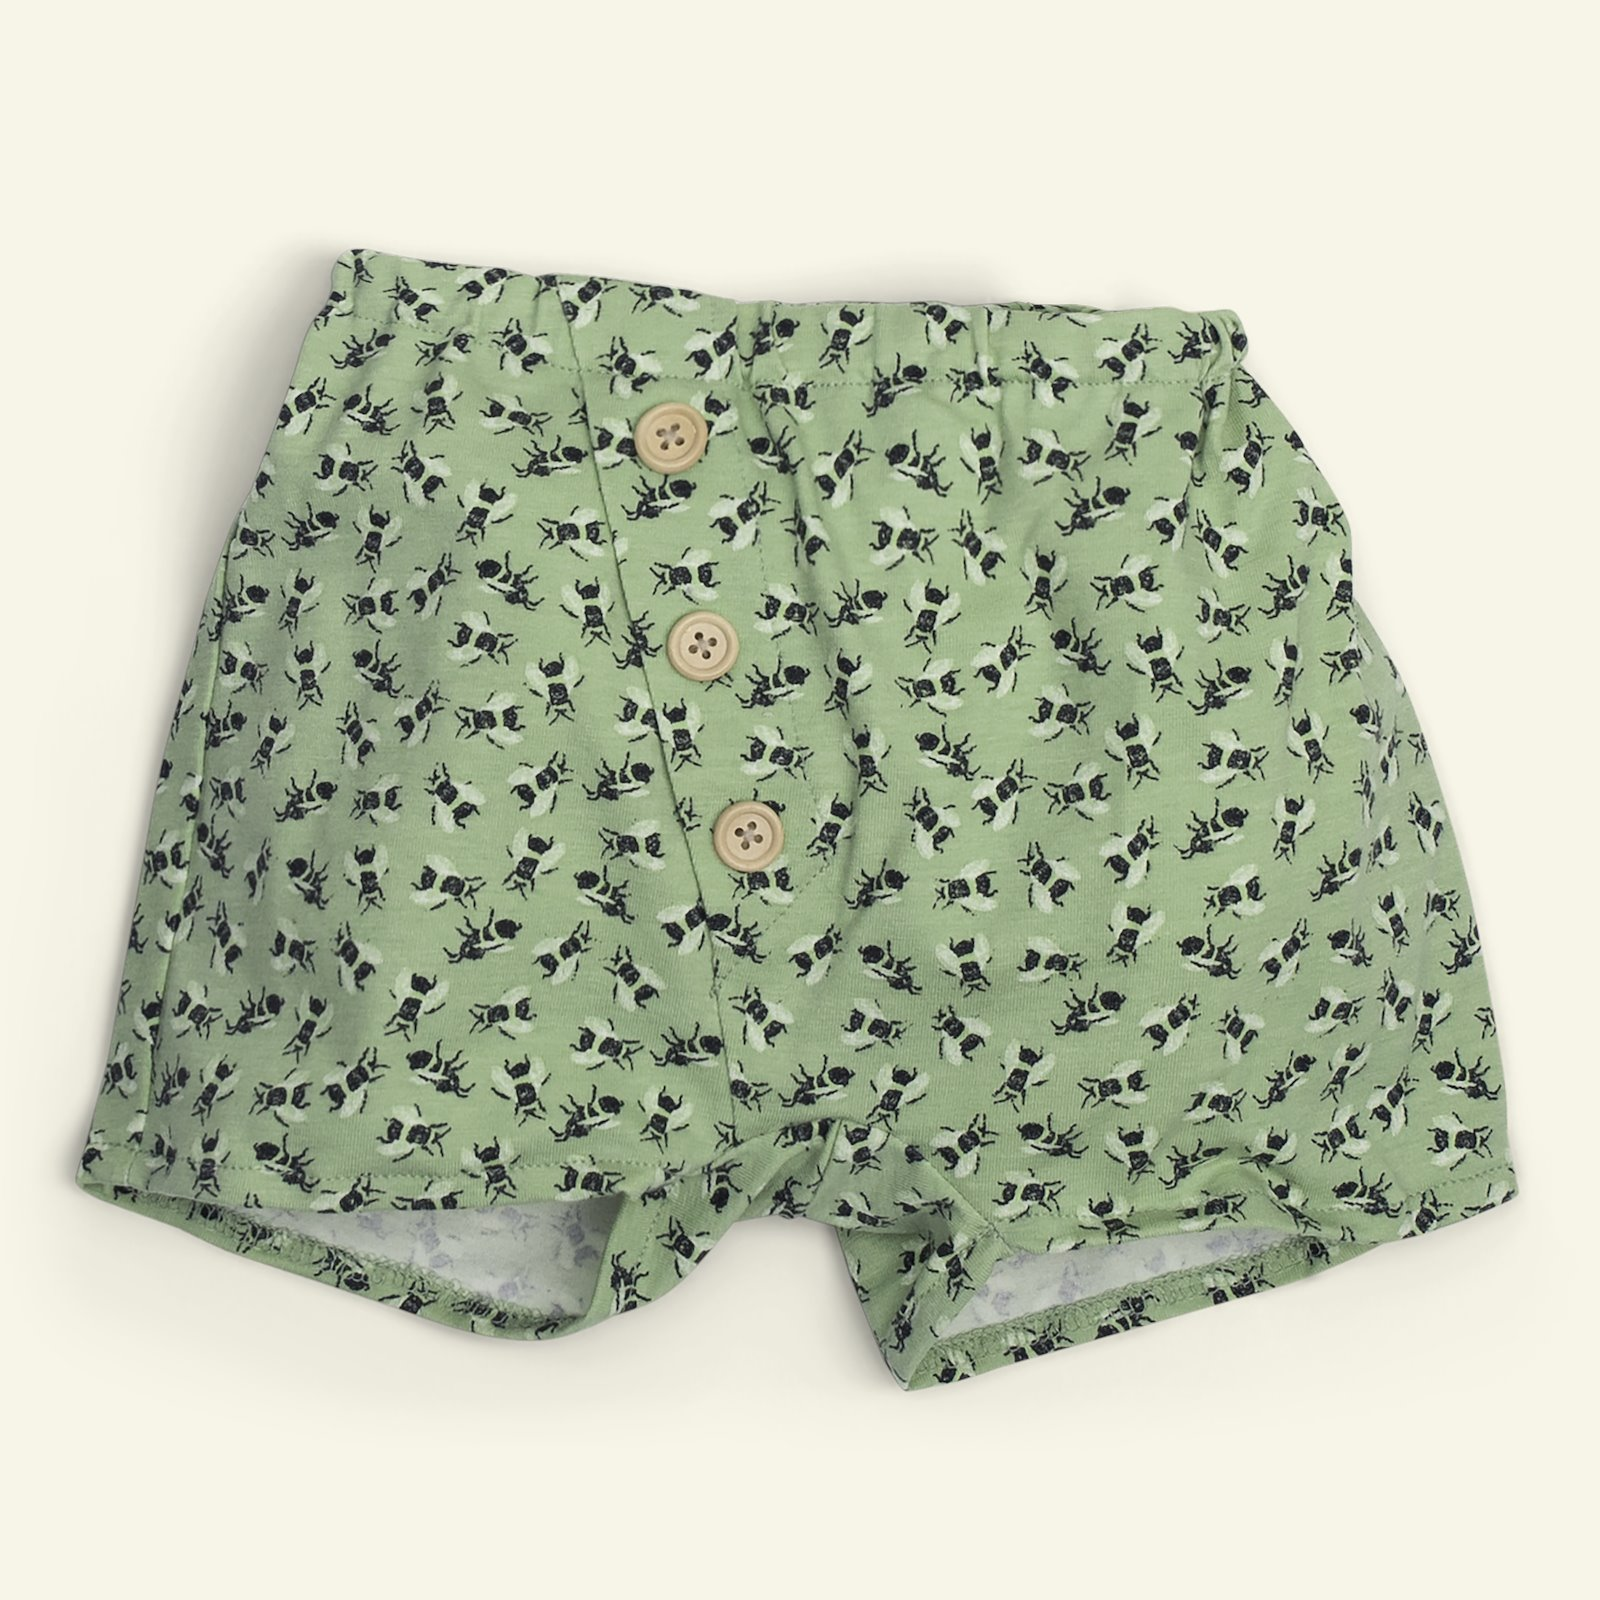 Trousers and shorts, 80/1y p80008_272731_33504_sskit